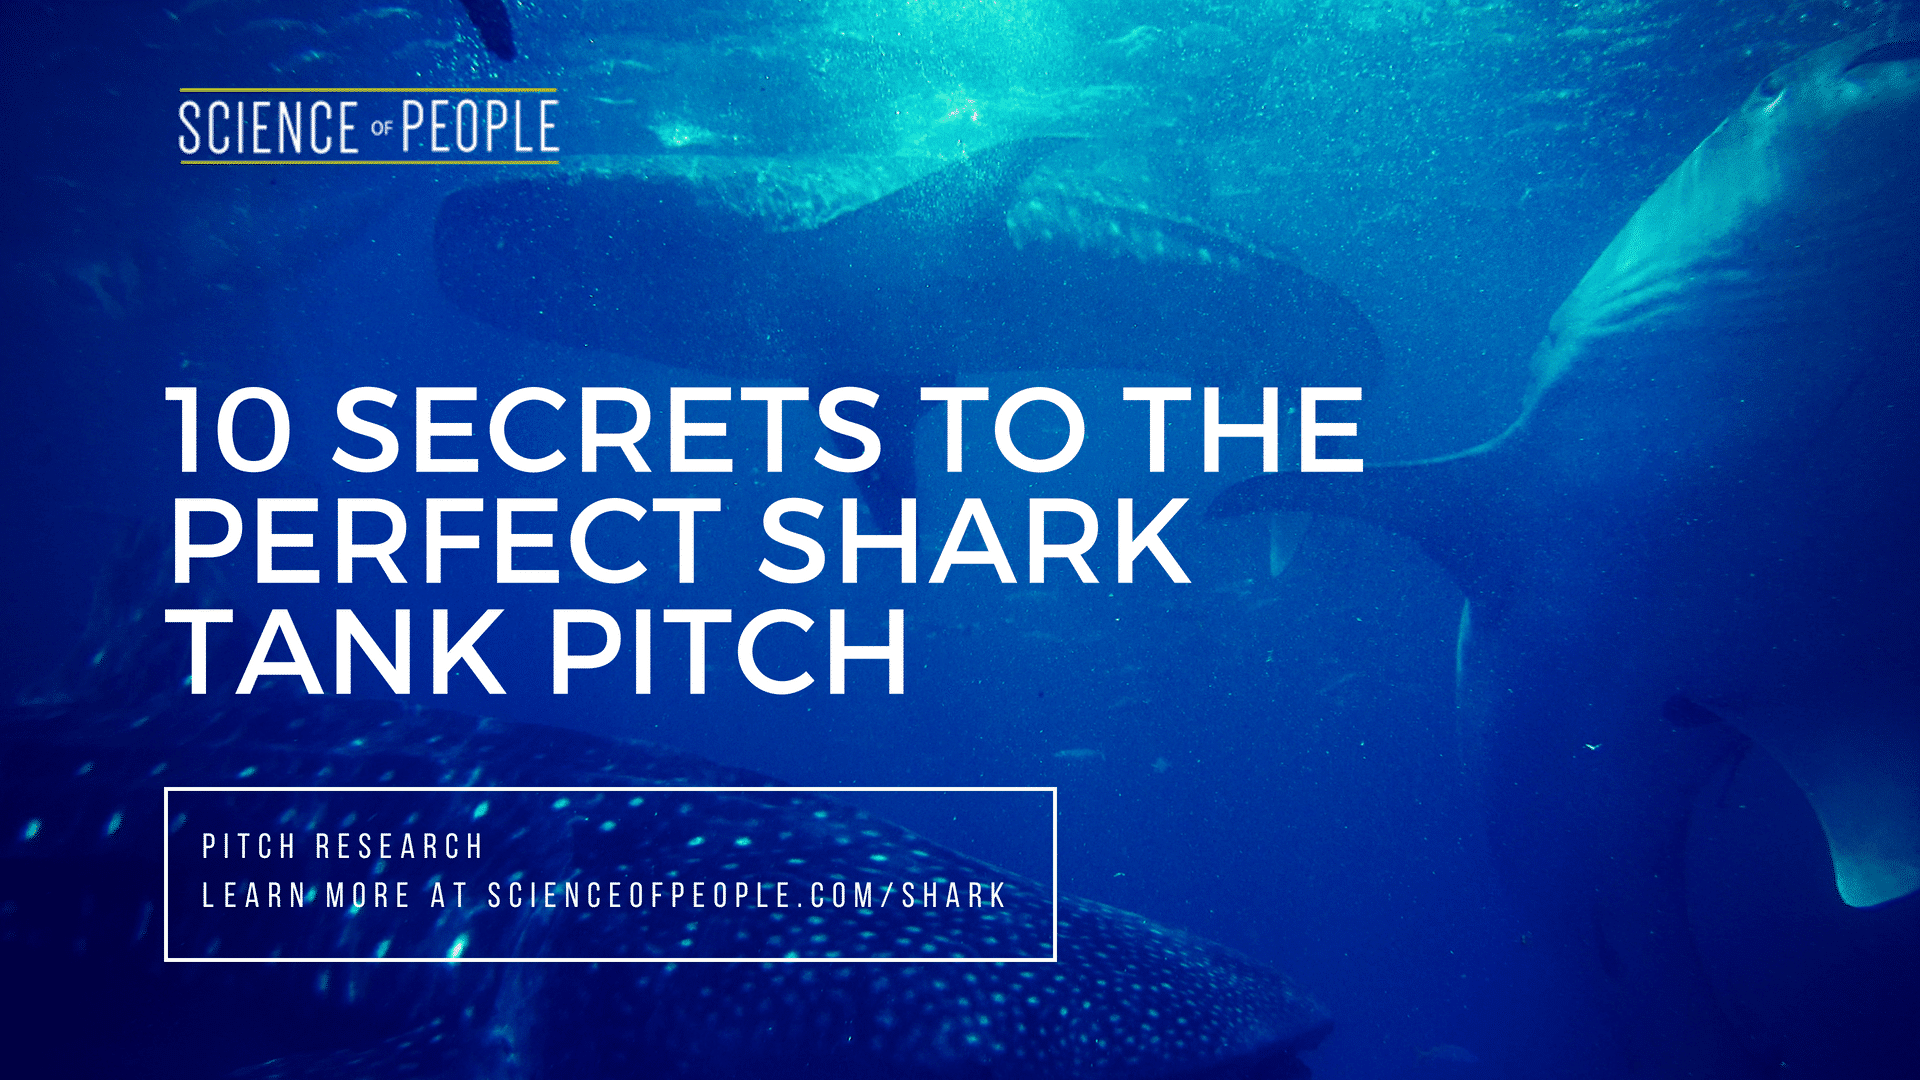 10 Secrets To The Perfect Shark Tank Pitch Science Of People